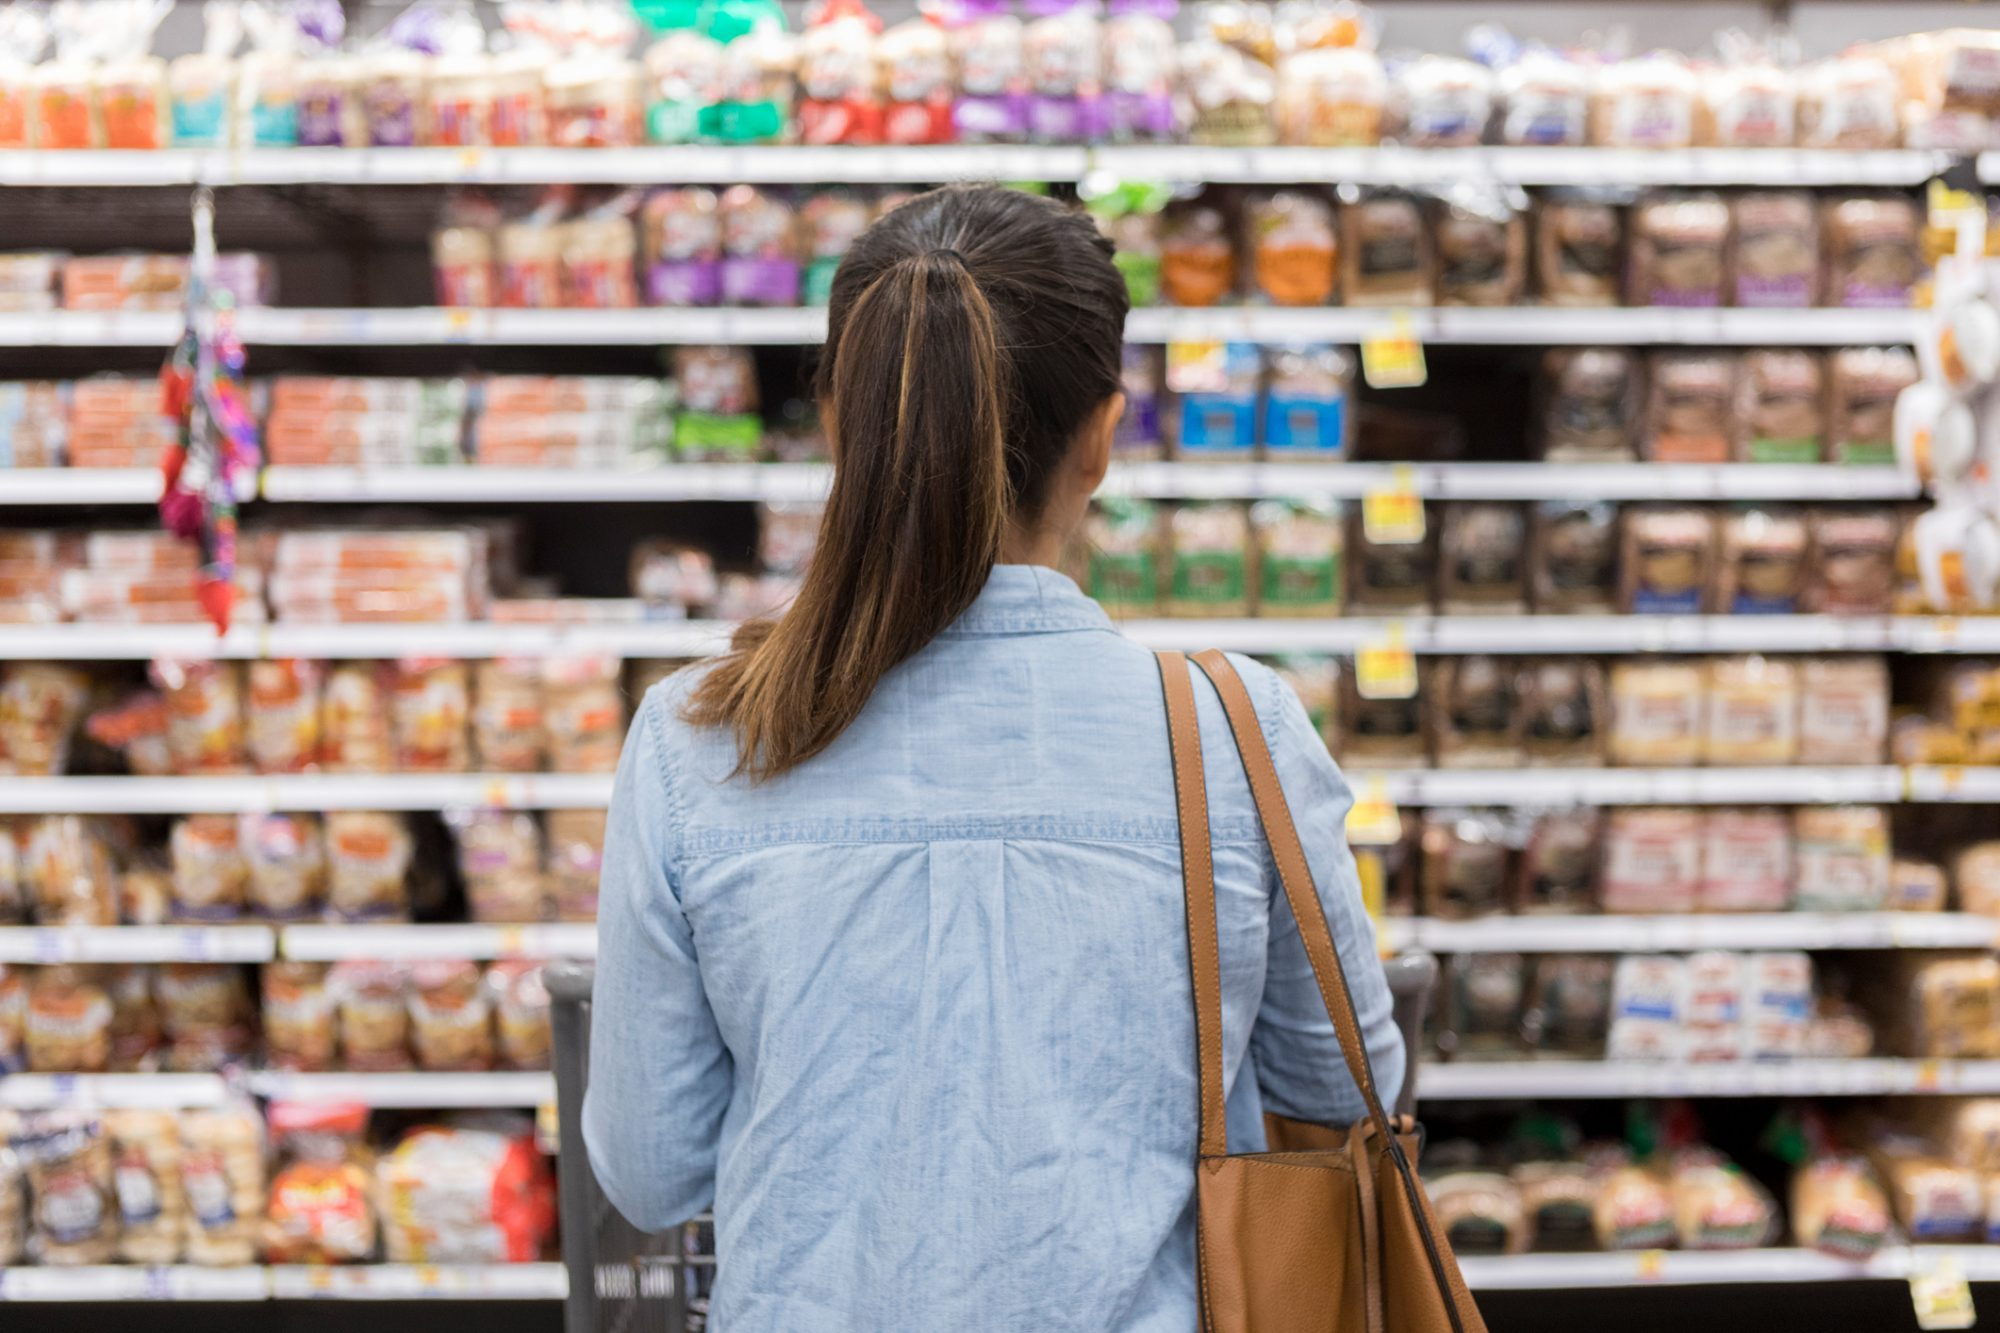 Unrecognizable woman marvels at grocery bread selection